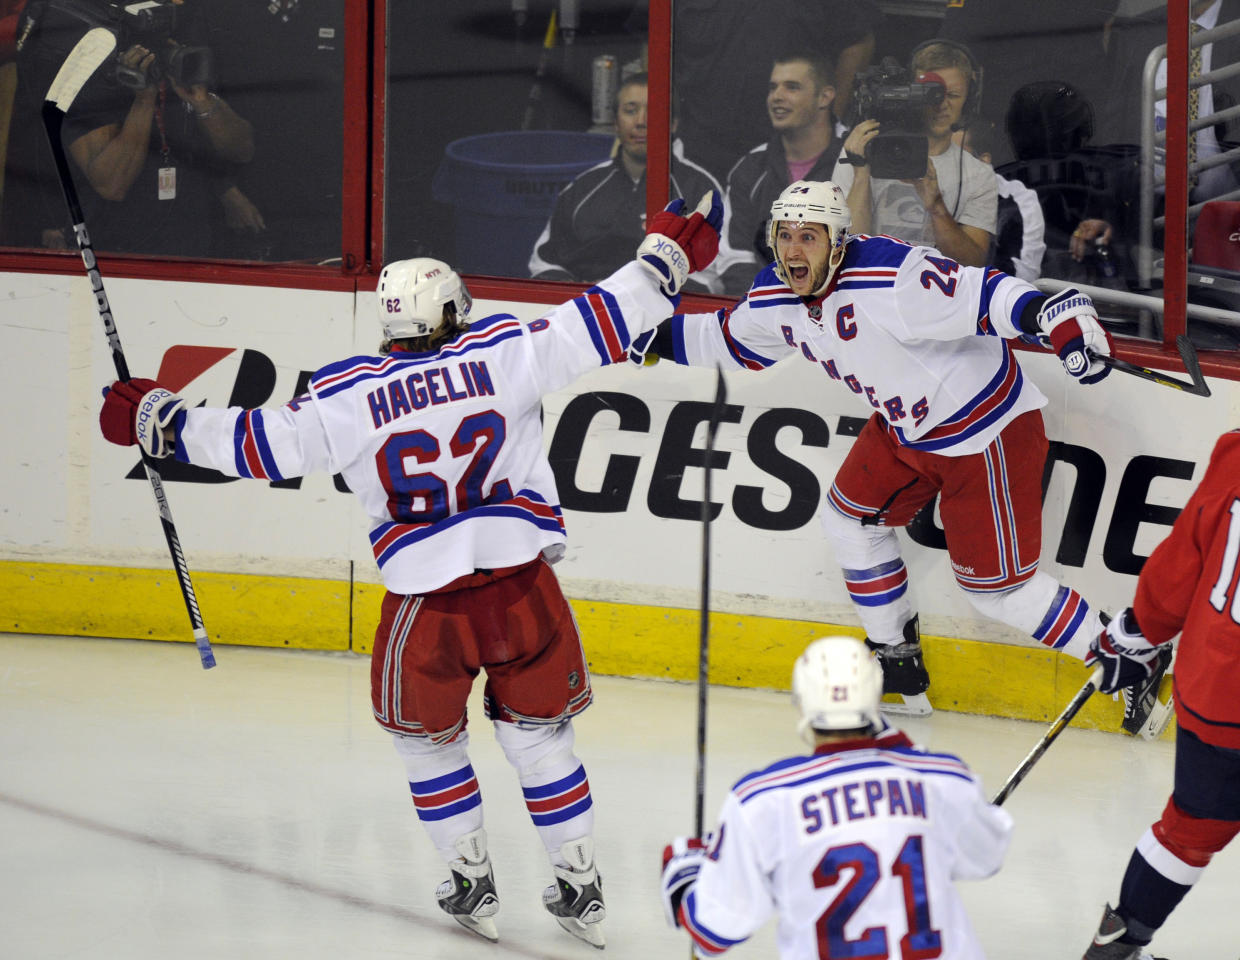 New York Rangers right wing Ryan Callahan (24) celebrates his goal with teammates Carl Hagelin (62) and Derek Stepan (21) against the Washington Capitals during the third period of Game 7 first-round NHL Stanley Cup playoff hockey series, Monday, May 13, 2013, in Washington. The Rangers won 5-0. (AP Photo/Nick Wass)